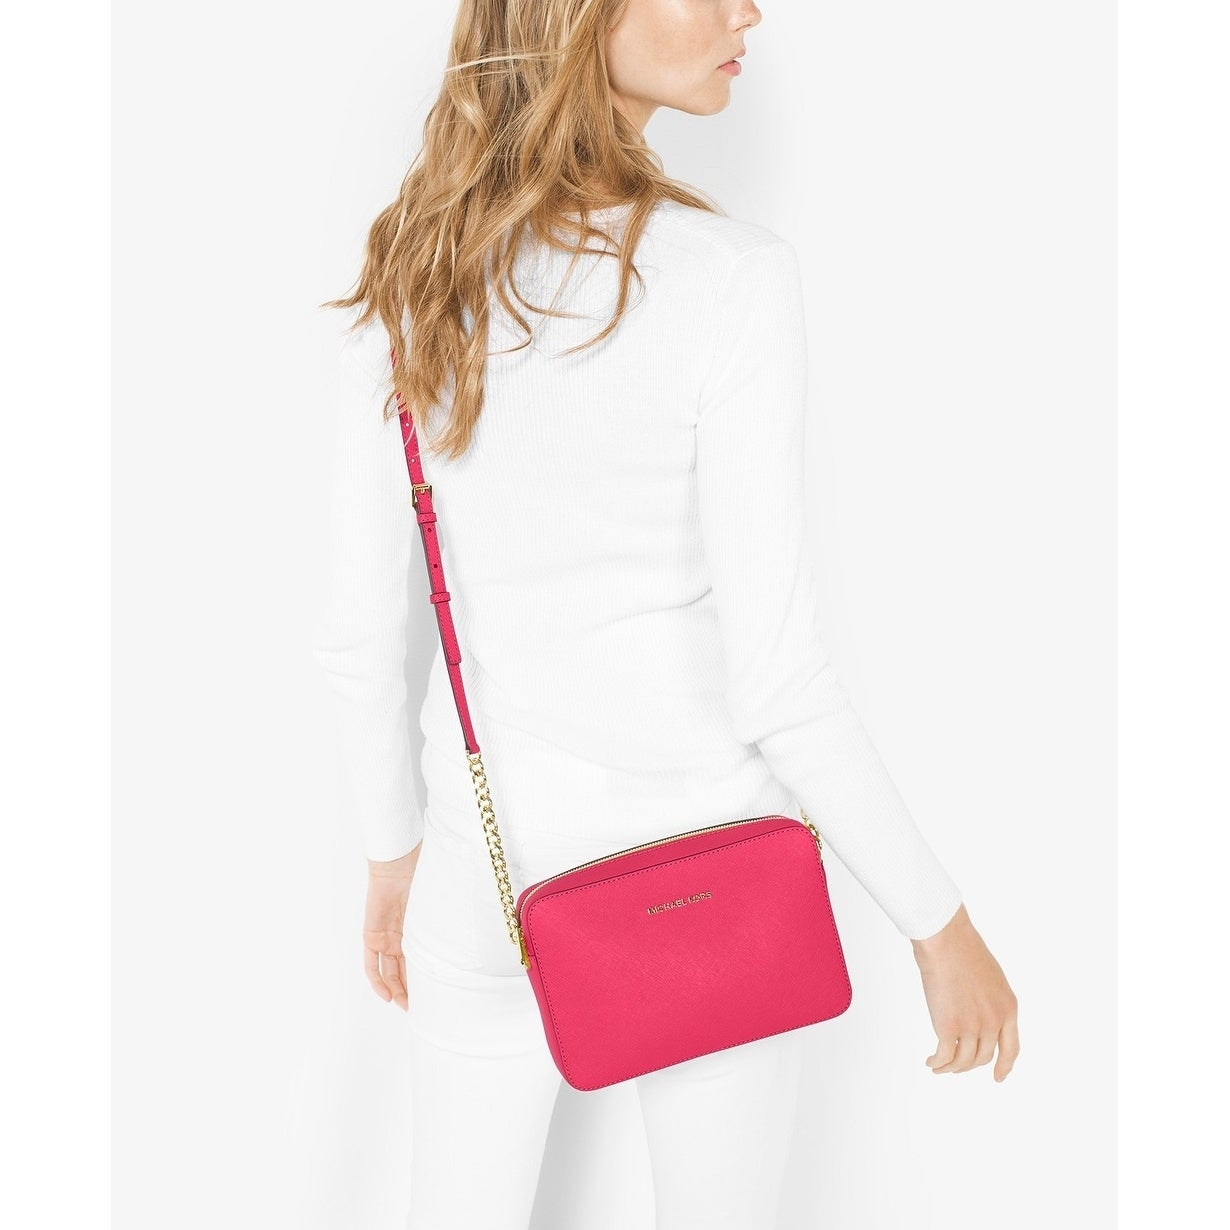 233264eee744 Shop MICHAEL Michael Kors Jet Set Travel Large Crossbody Rose Pink - On  Sale - Free Shipping Today - Overstock - 22277044